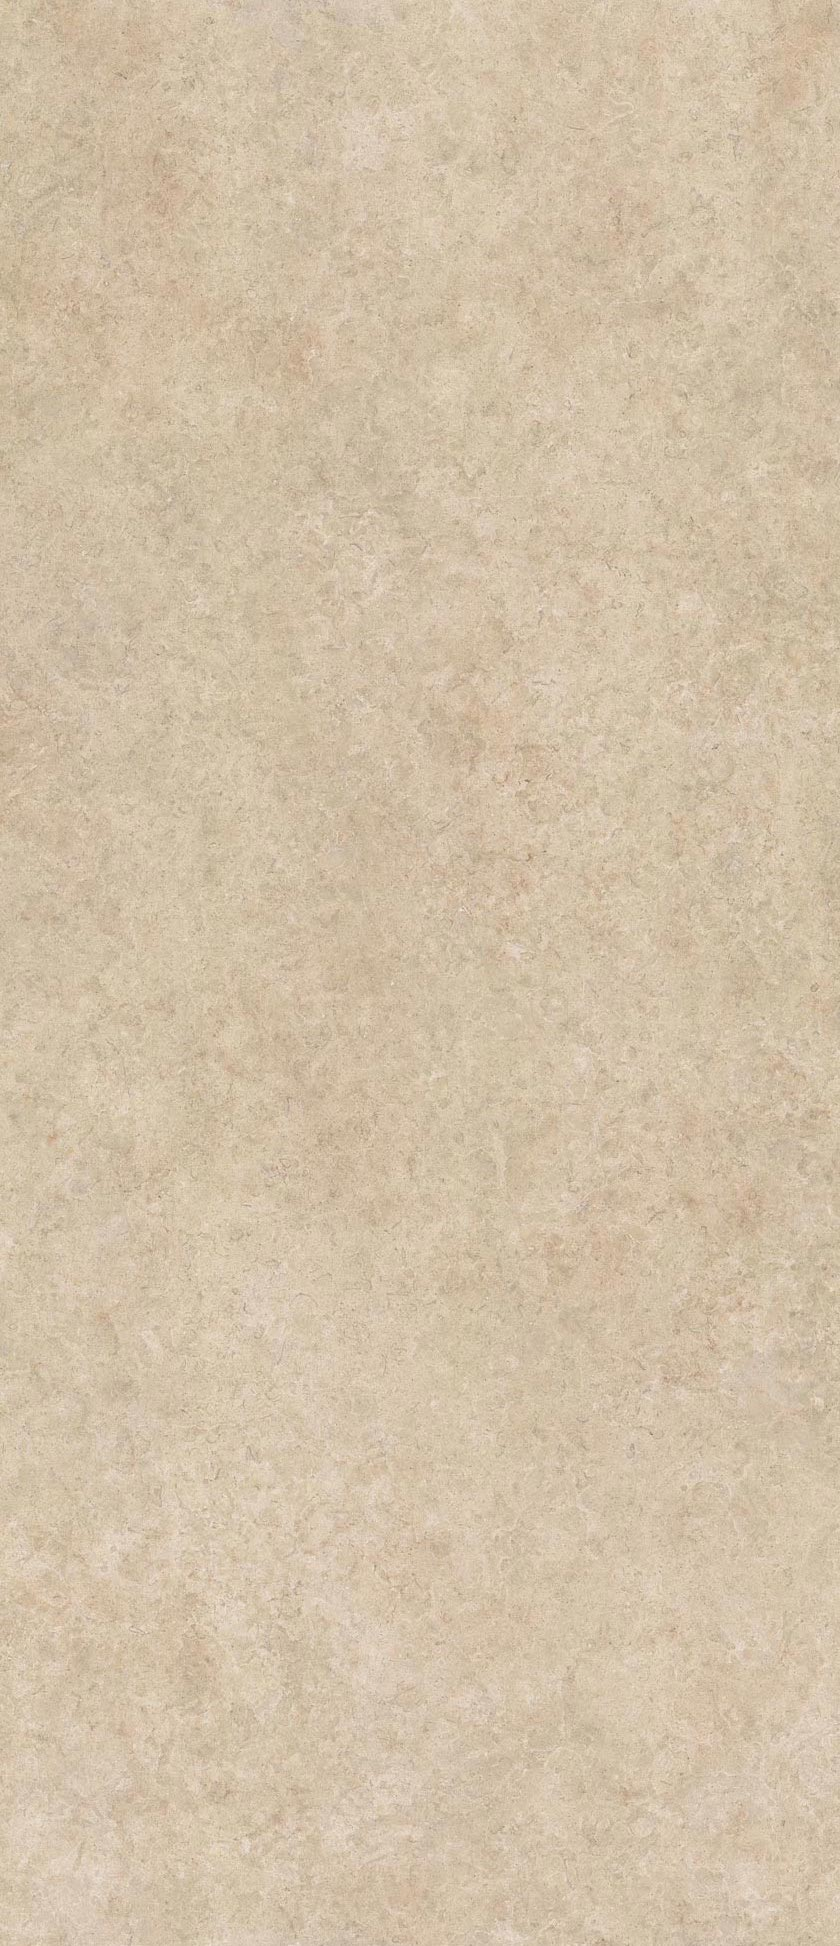 lims-beige-grande-lastra-in-gres-porcellanato-atlas-plan-finitura-hammered